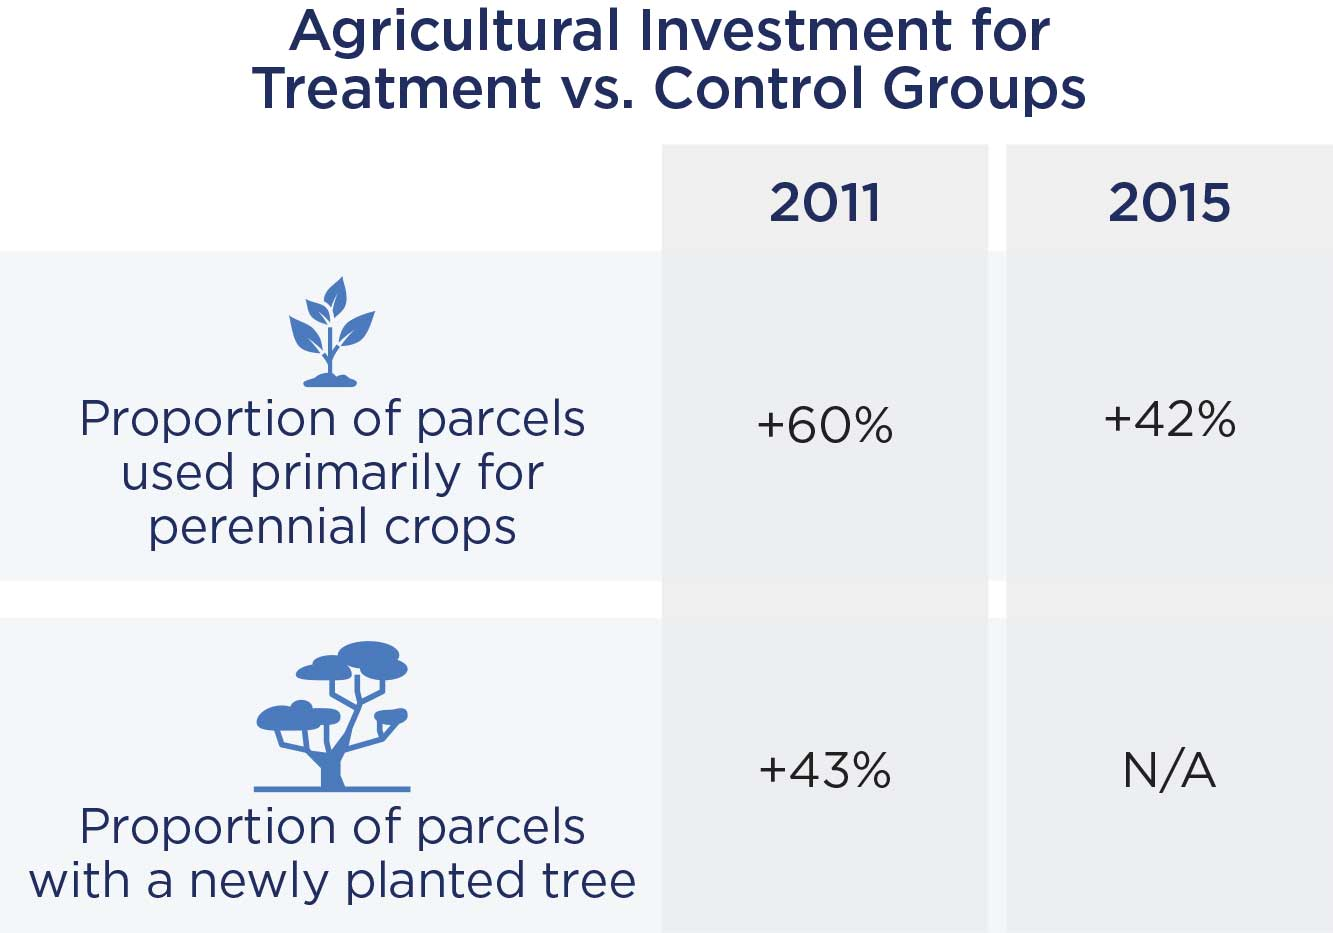 Grahpic of Agricultural Investment for Treatment vs. Control Groups